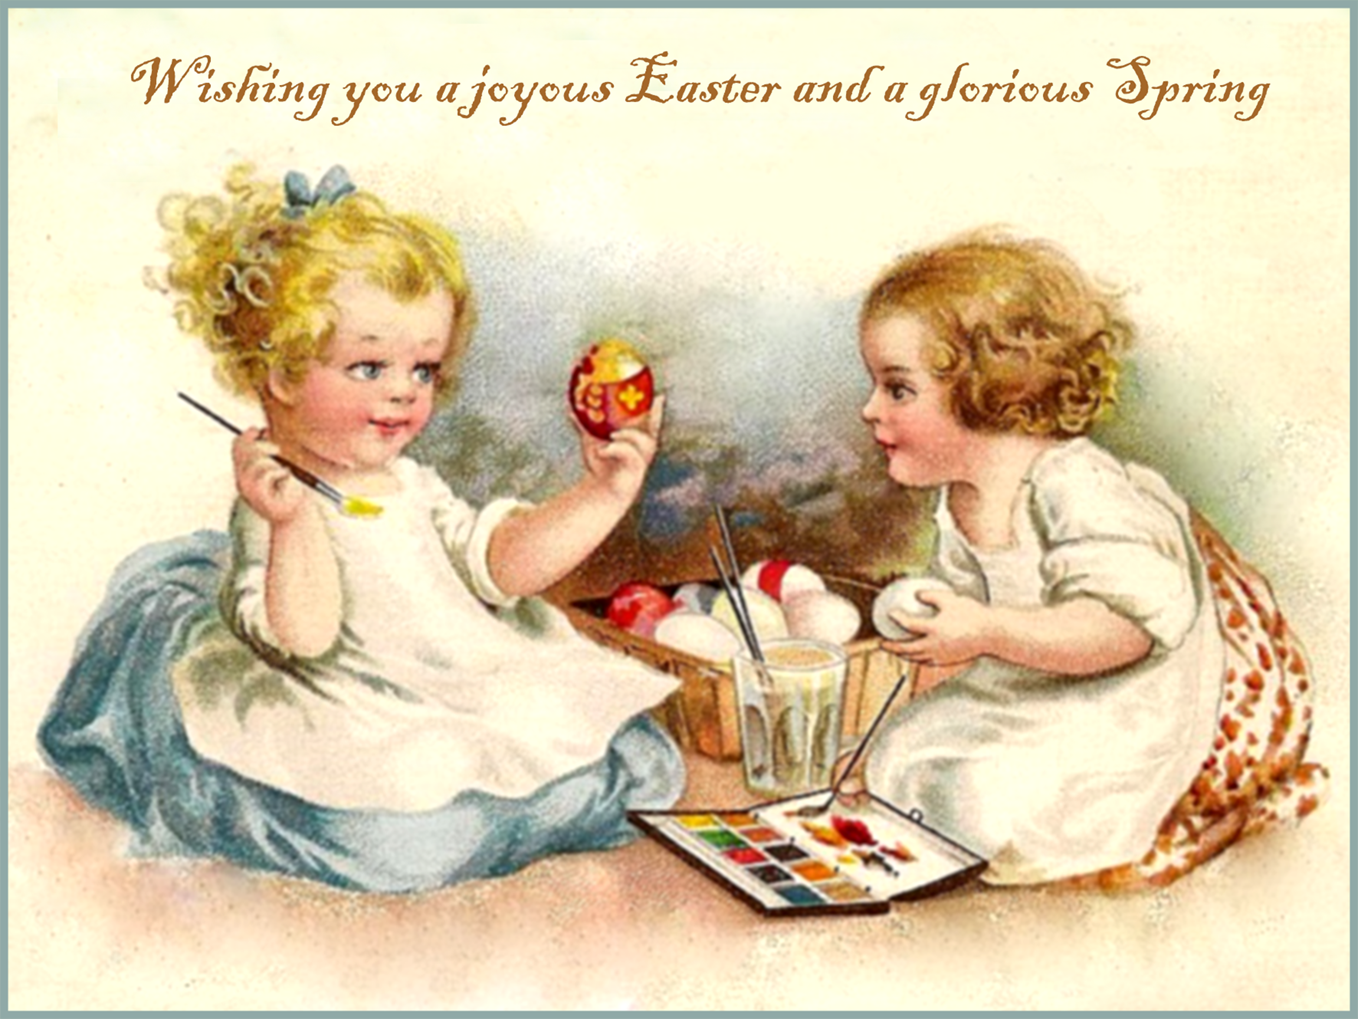 Printable Easter postcard for free with girl painting eggs.